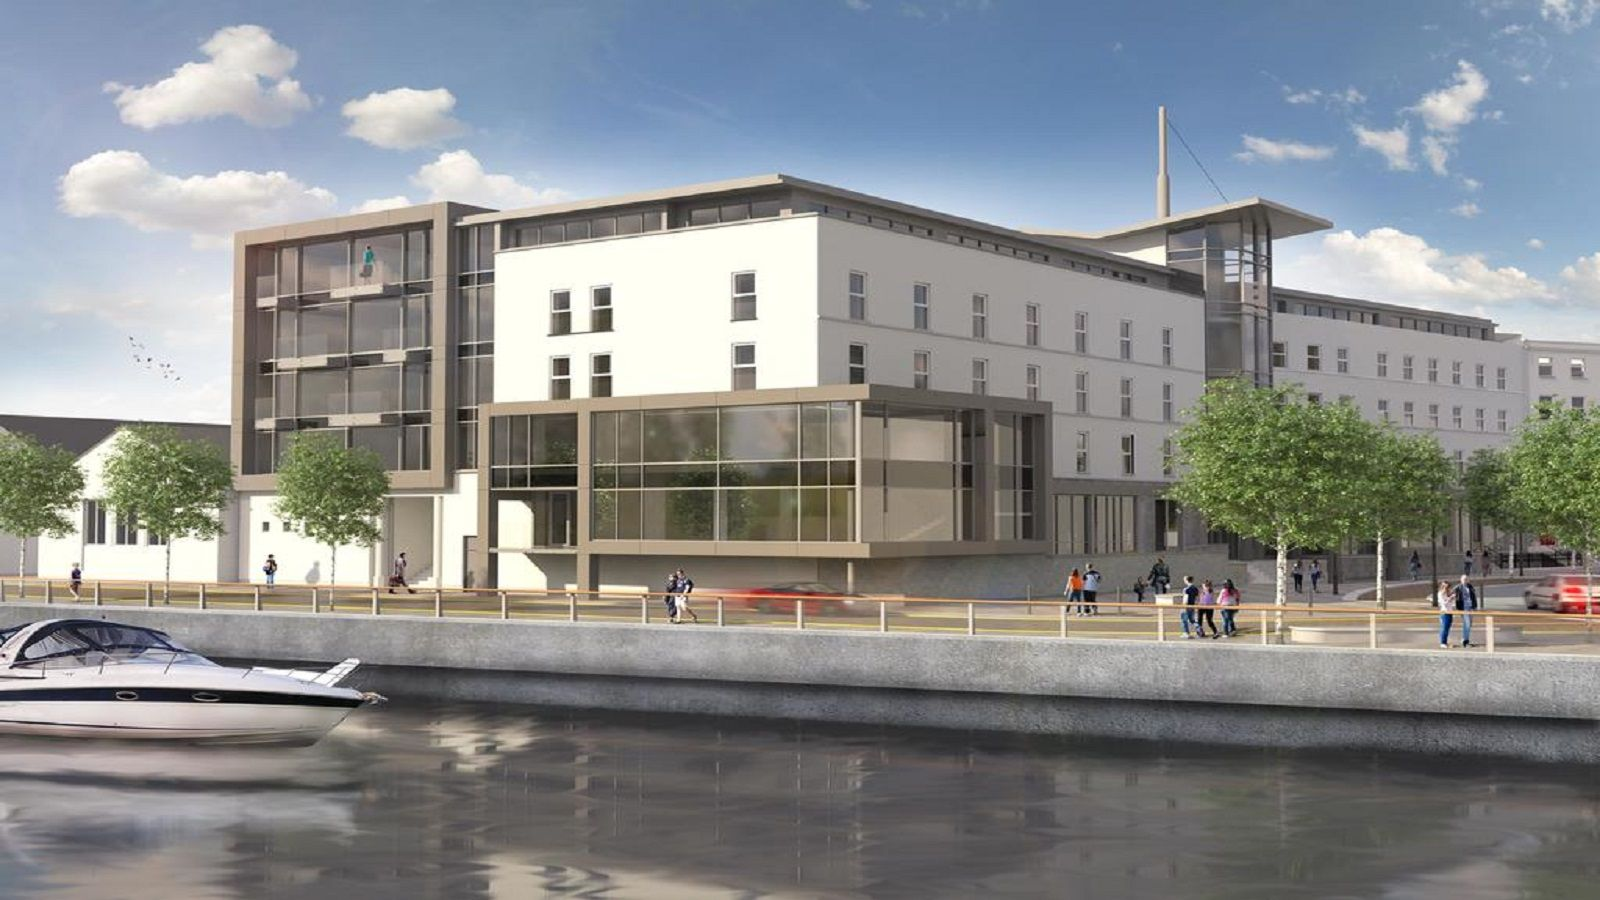 4 Tower Hotel Waterford Exterior 1600 x 900